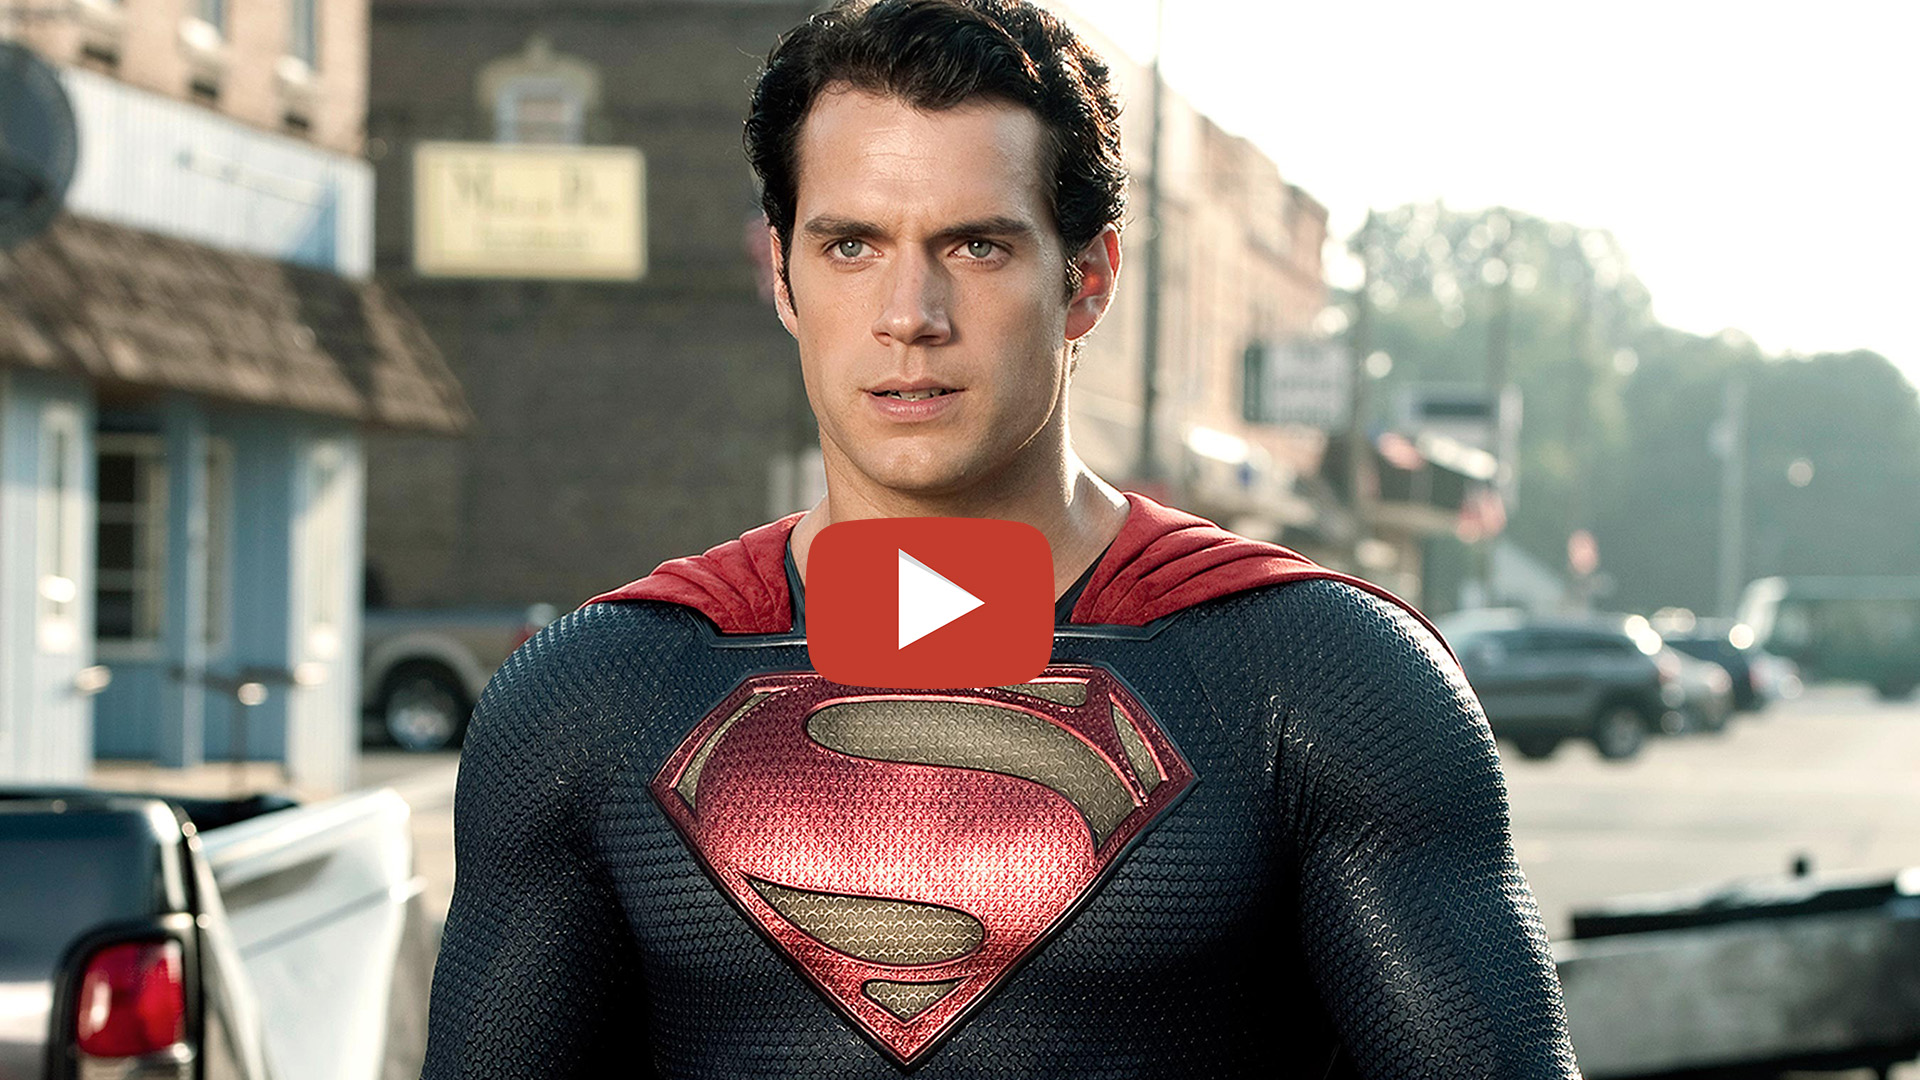 Henry Cavill Out as Superman in DC Movies